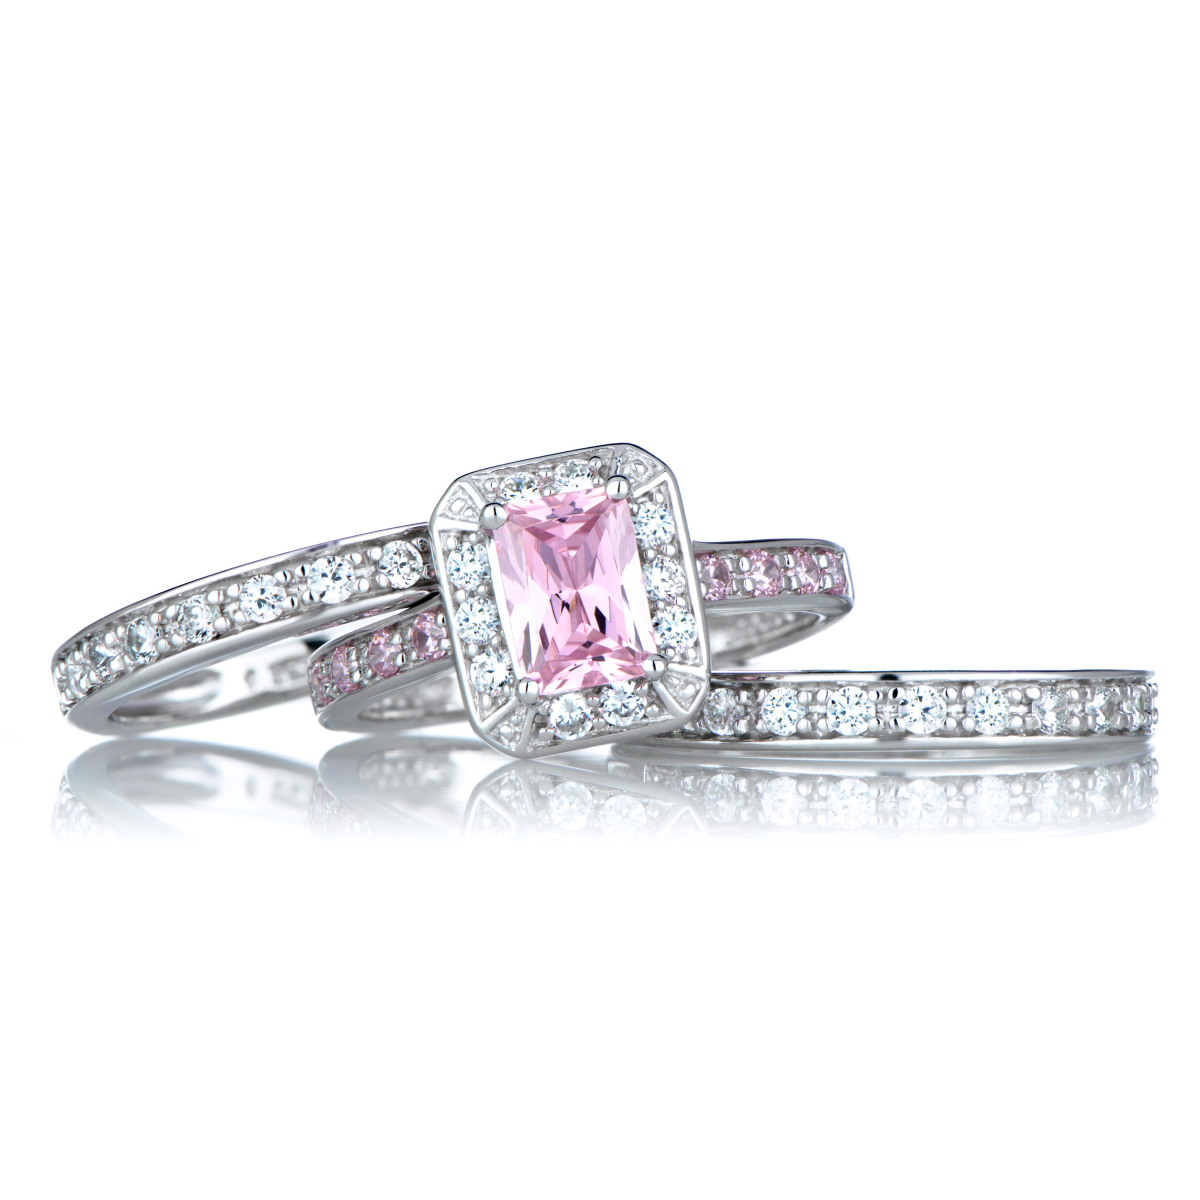 pink cubic zirconia wedding ring set - Pink Wedding Ring Set